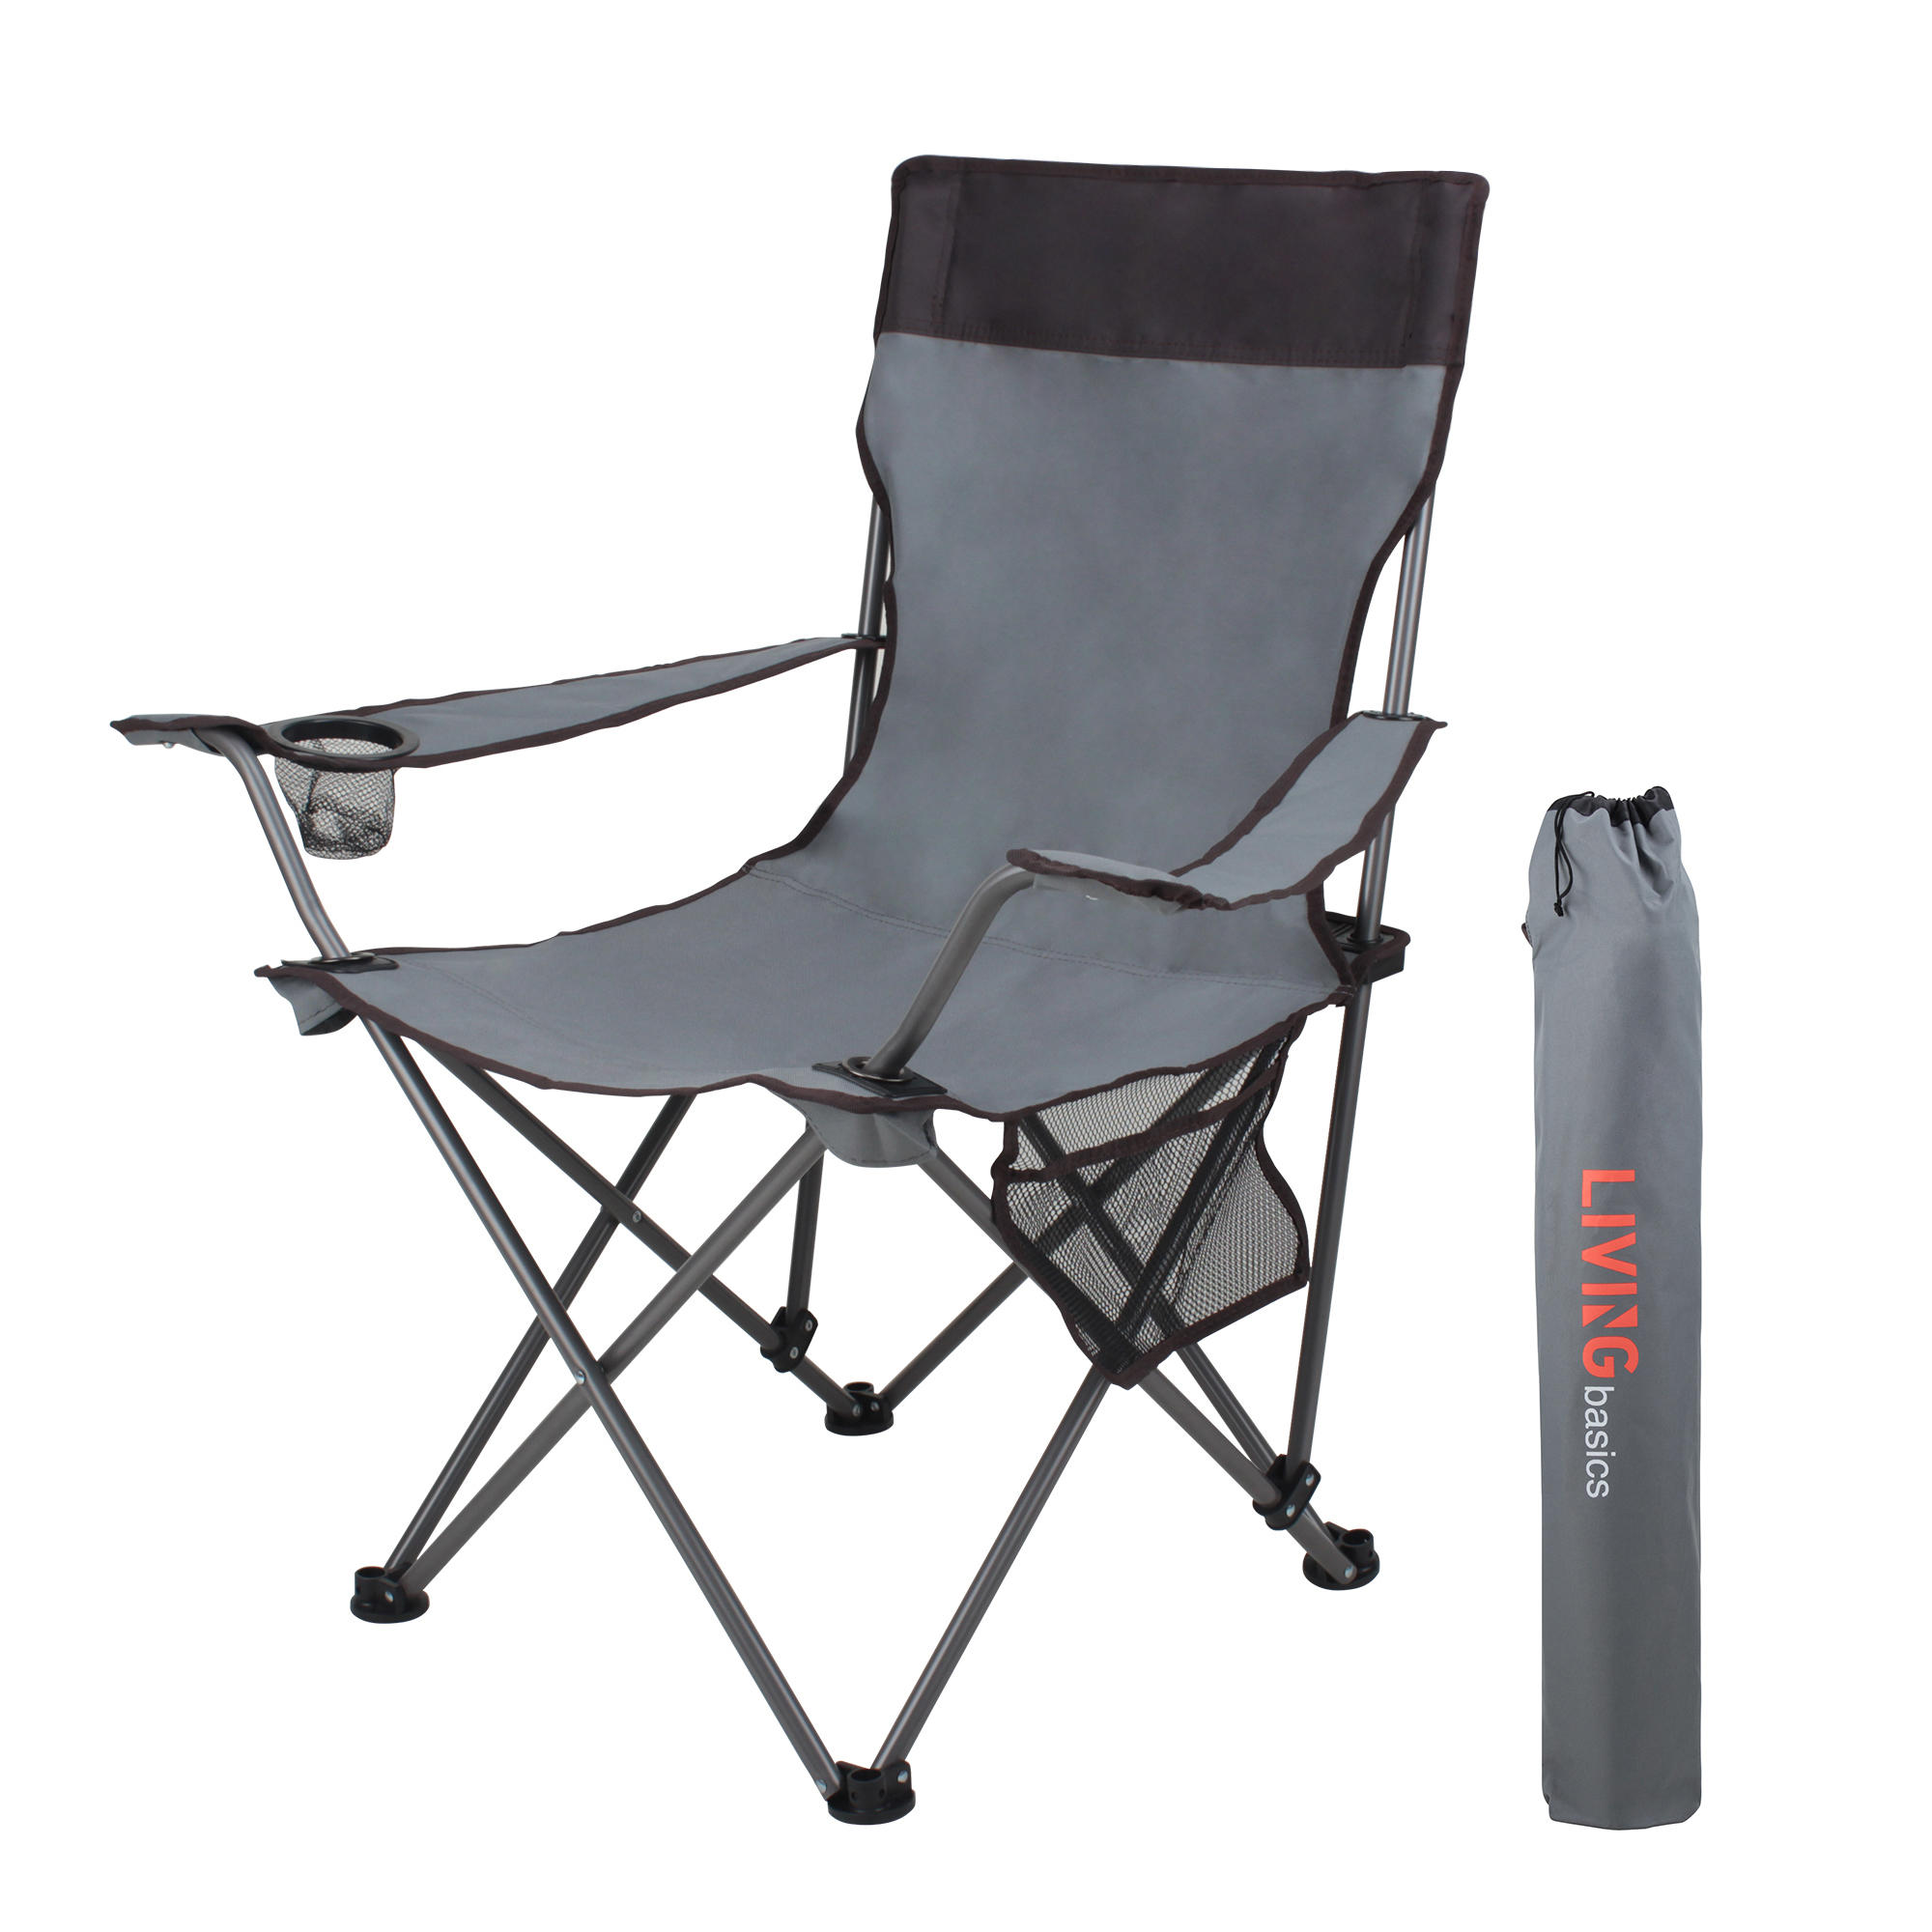 B00c0 livingbasics lvb2 1410b gy camping chairs tables portable folding camping chair with armrests cup holder livingbasics